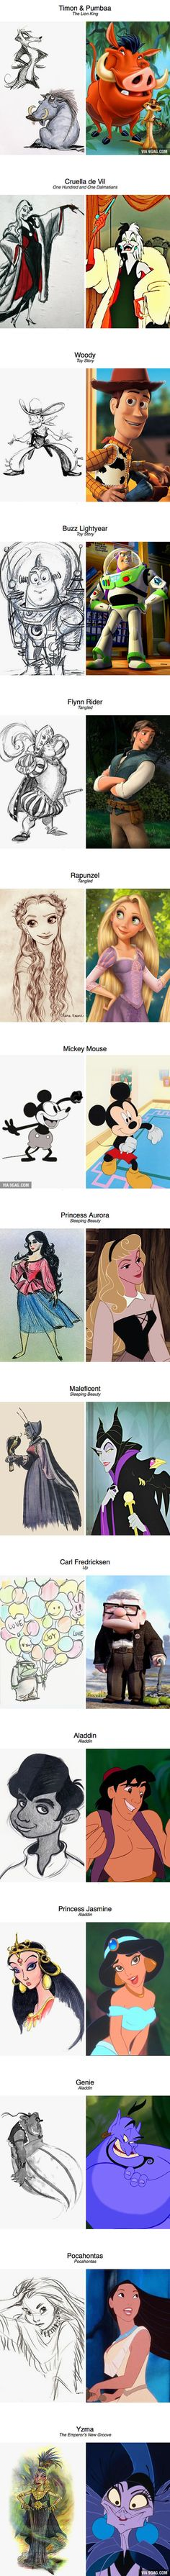 Original concept drawings of Disney characters - 9GAG